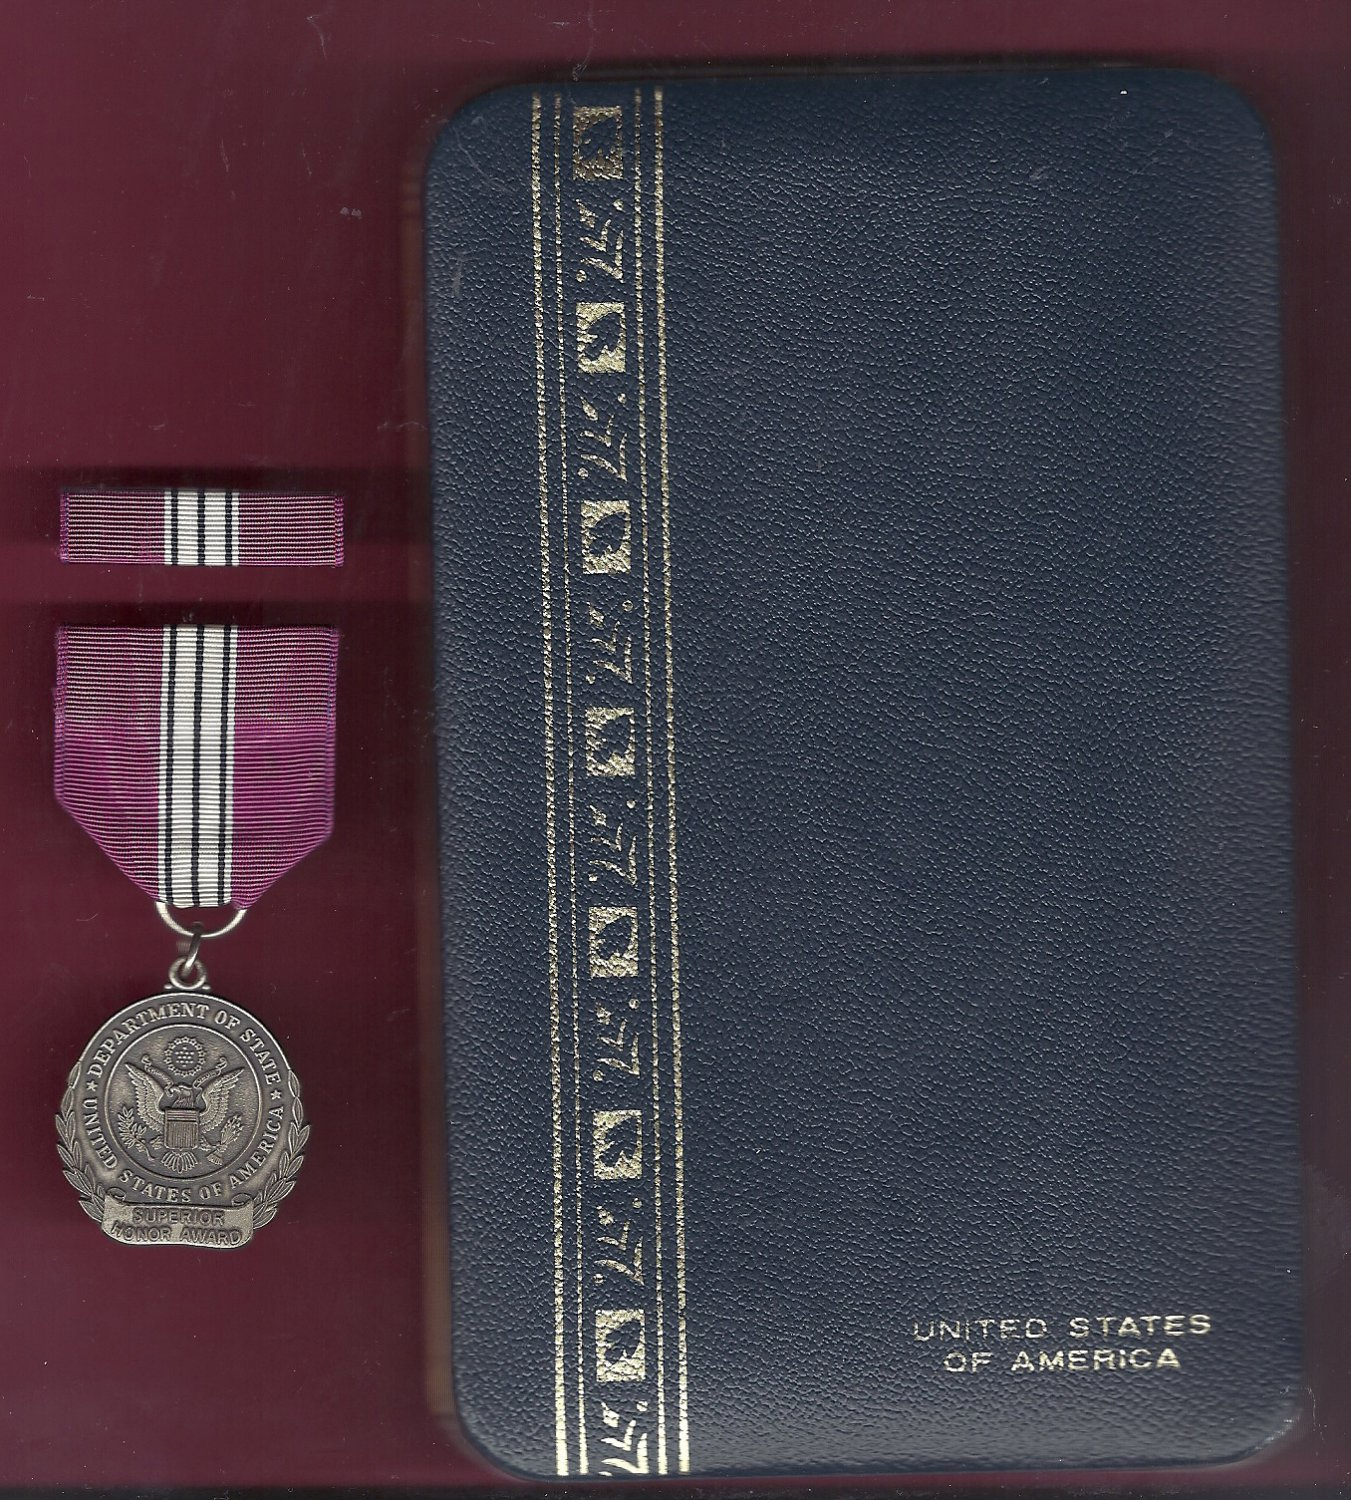 State Department Superior Honor Award medal with ribbon bar in case